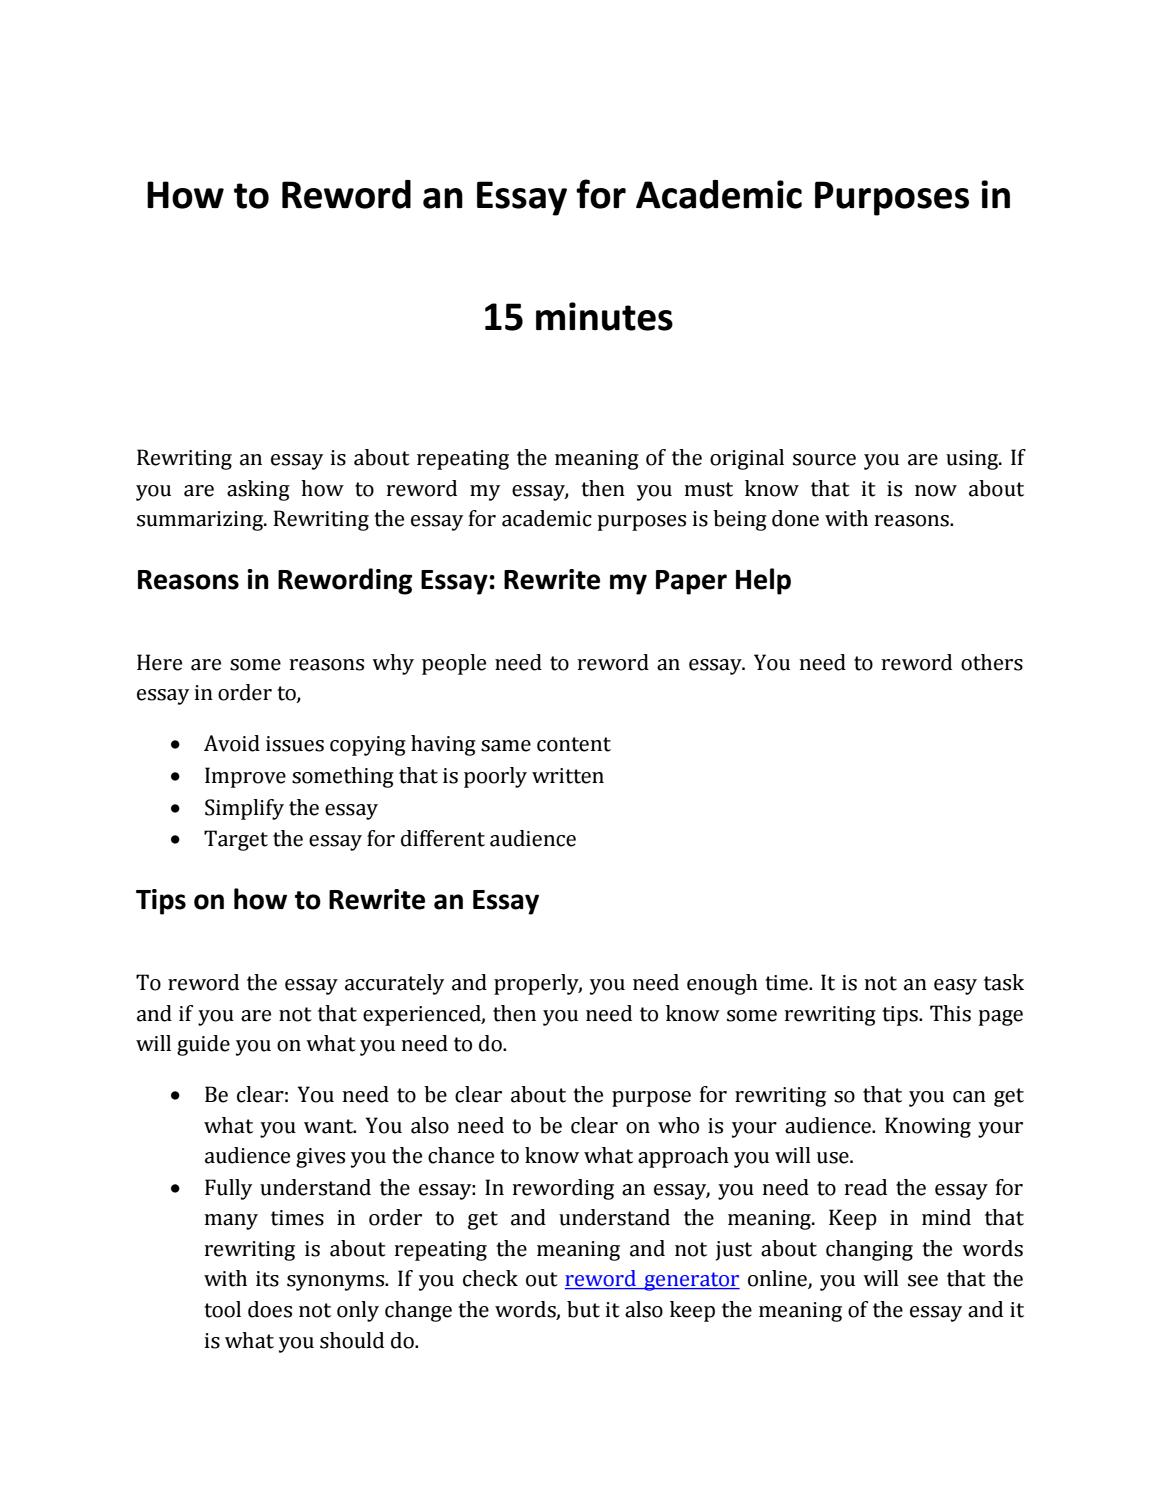 Help reword my essay how to do it in 15 minutes by stevemendoza